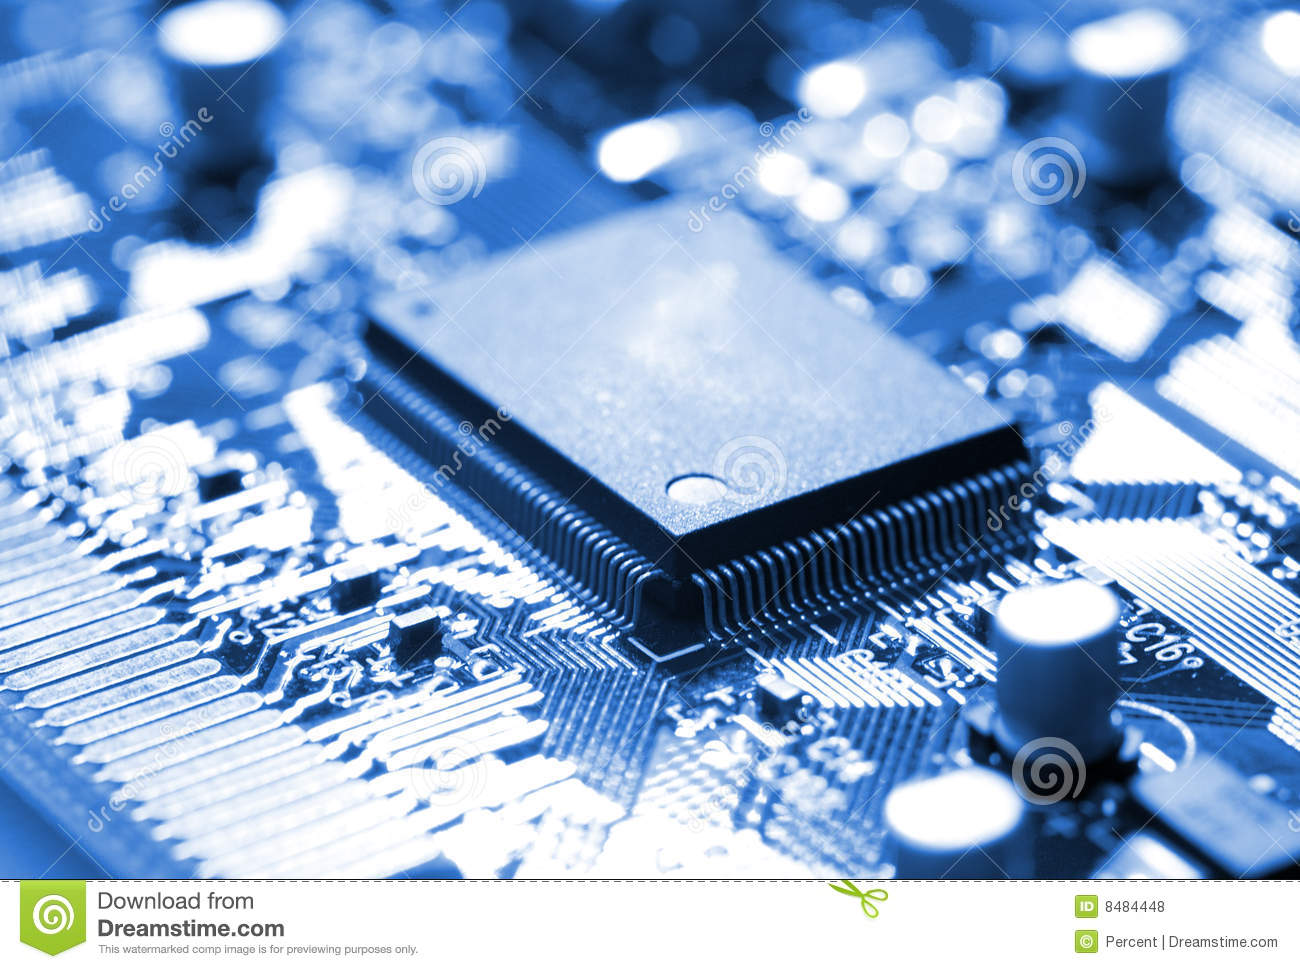 Microchip on circuit board royalty free stock photos for Seaview fishing pier facebook